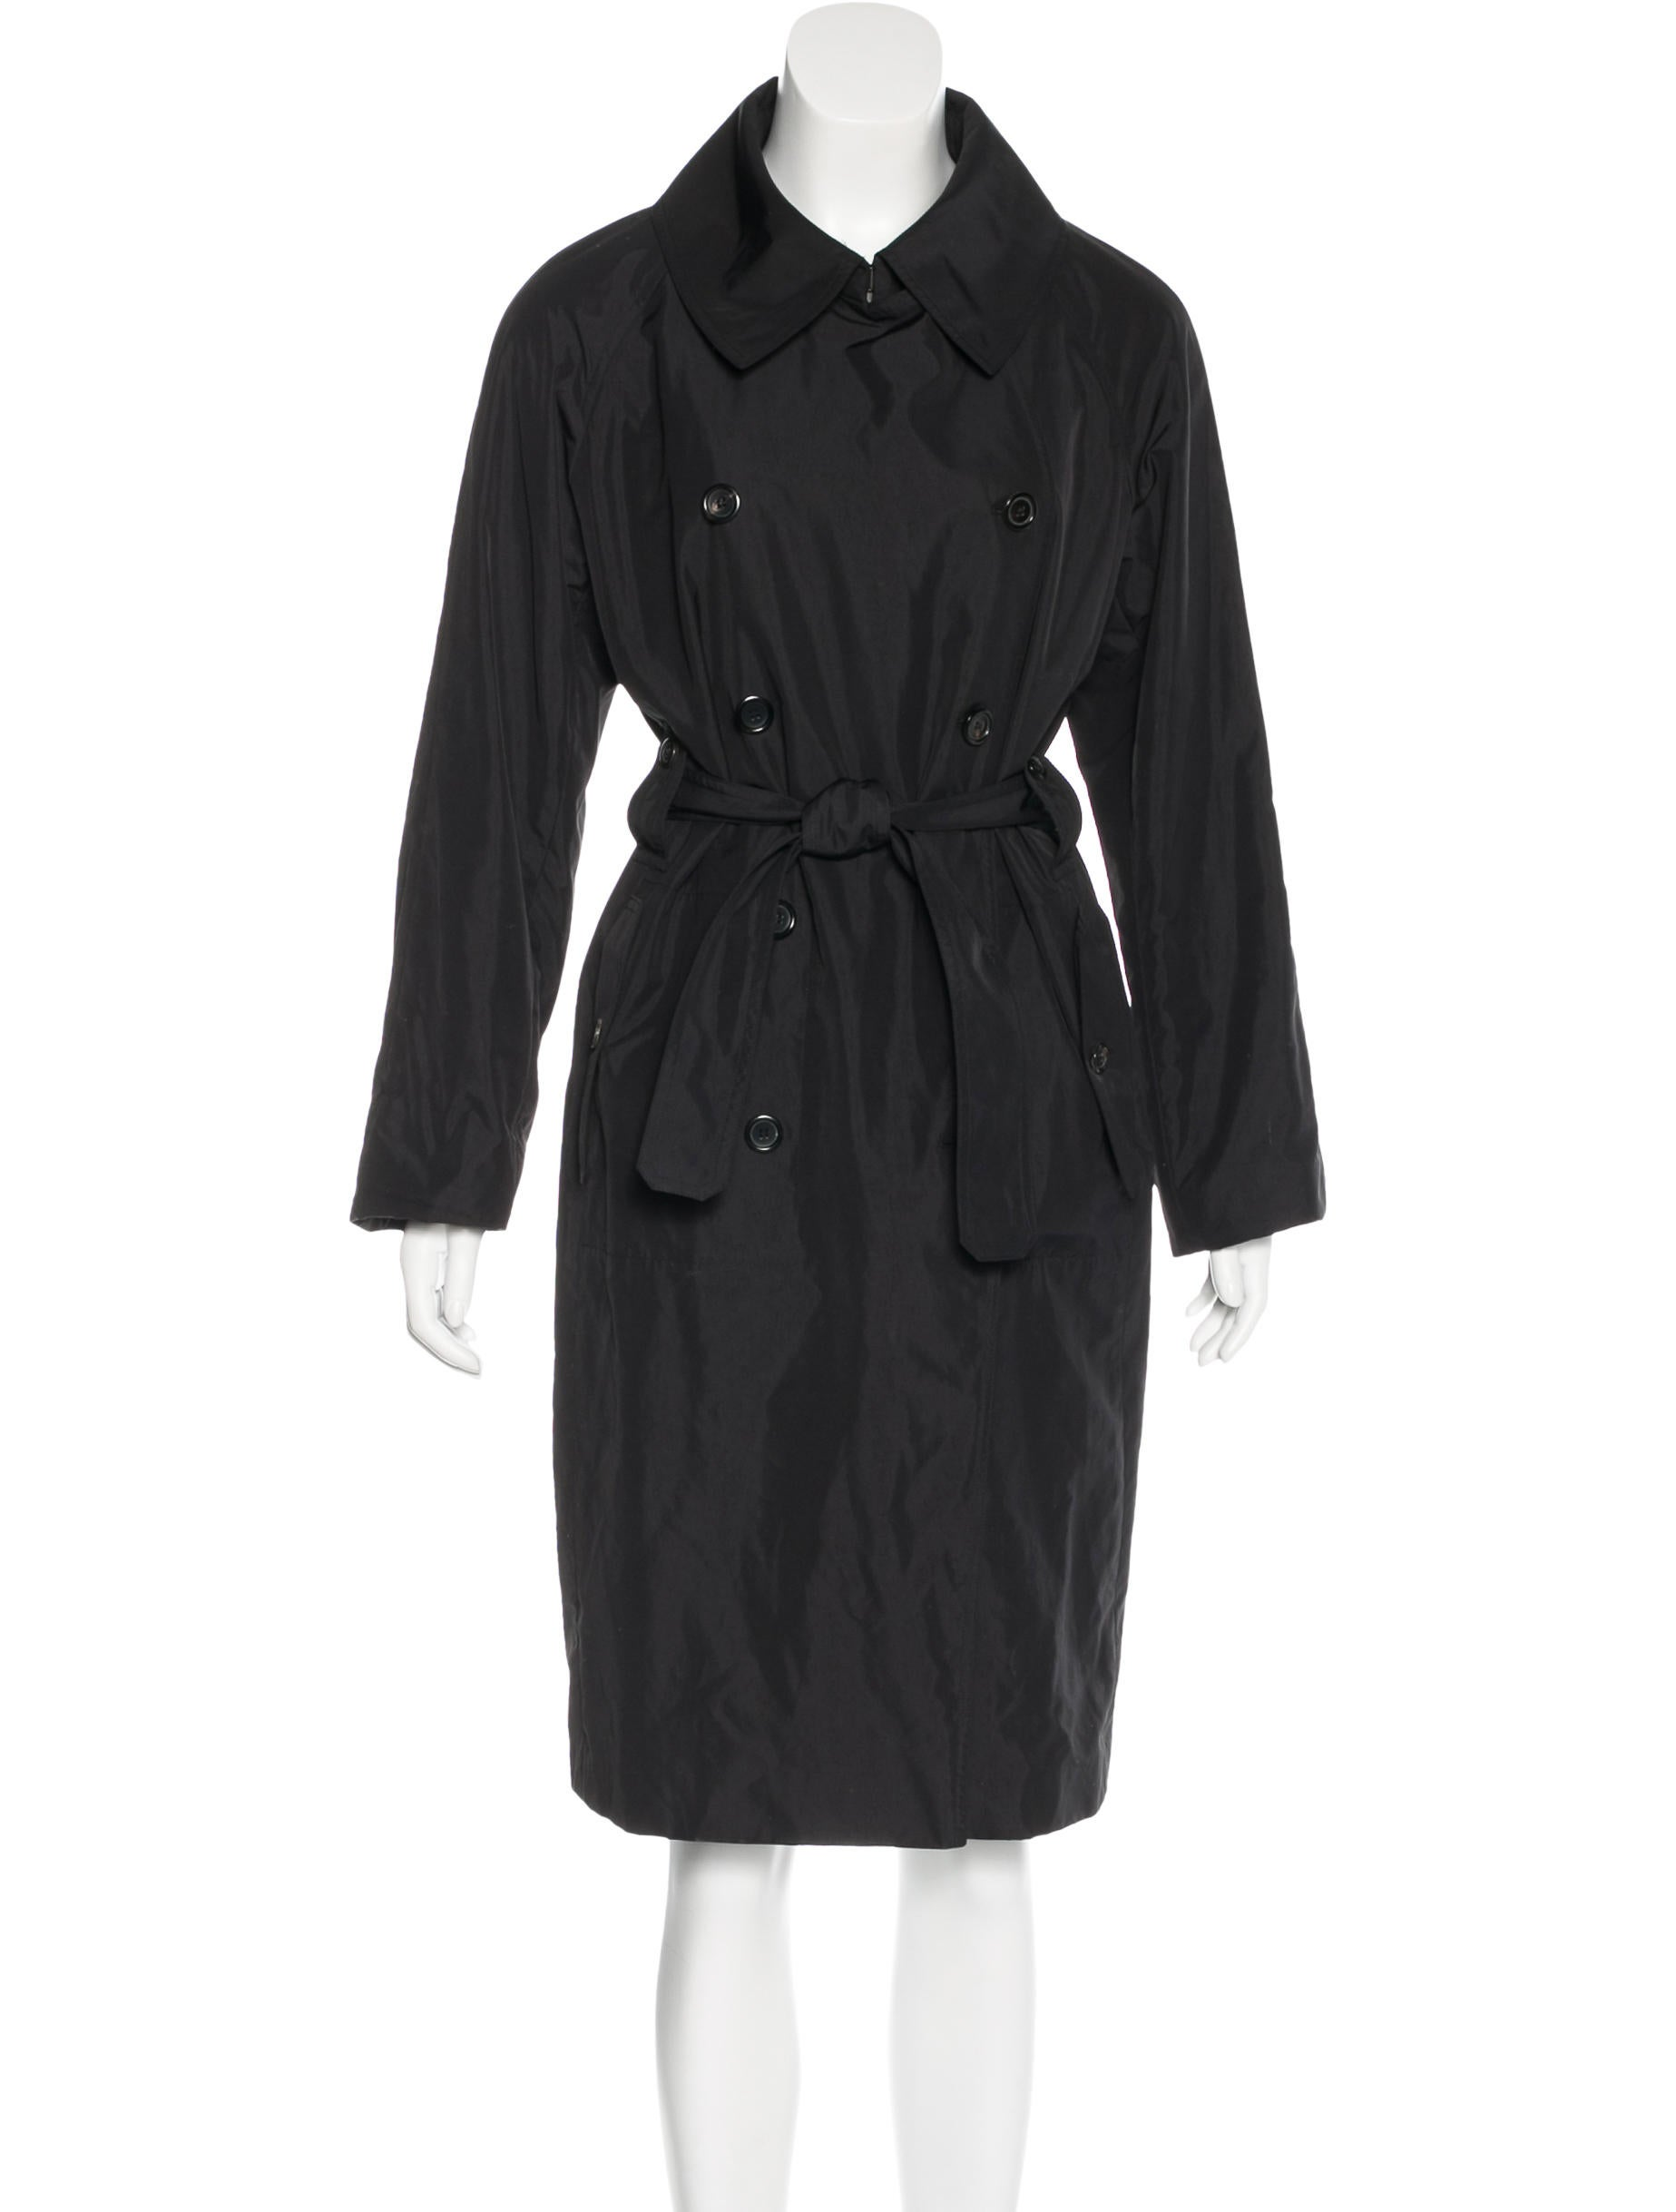 Shop the latest styles of Womens Trenchcoat Coats at Macys. Check out our designer collection of chic coats including peacoats, trench coats, puffer coats and more! Macy's Presents: The Edit- A curated mix of fashion and inspiration Check It Out. Free Shipping with $75 purchase + Free Store Pickup. Contiguous US.